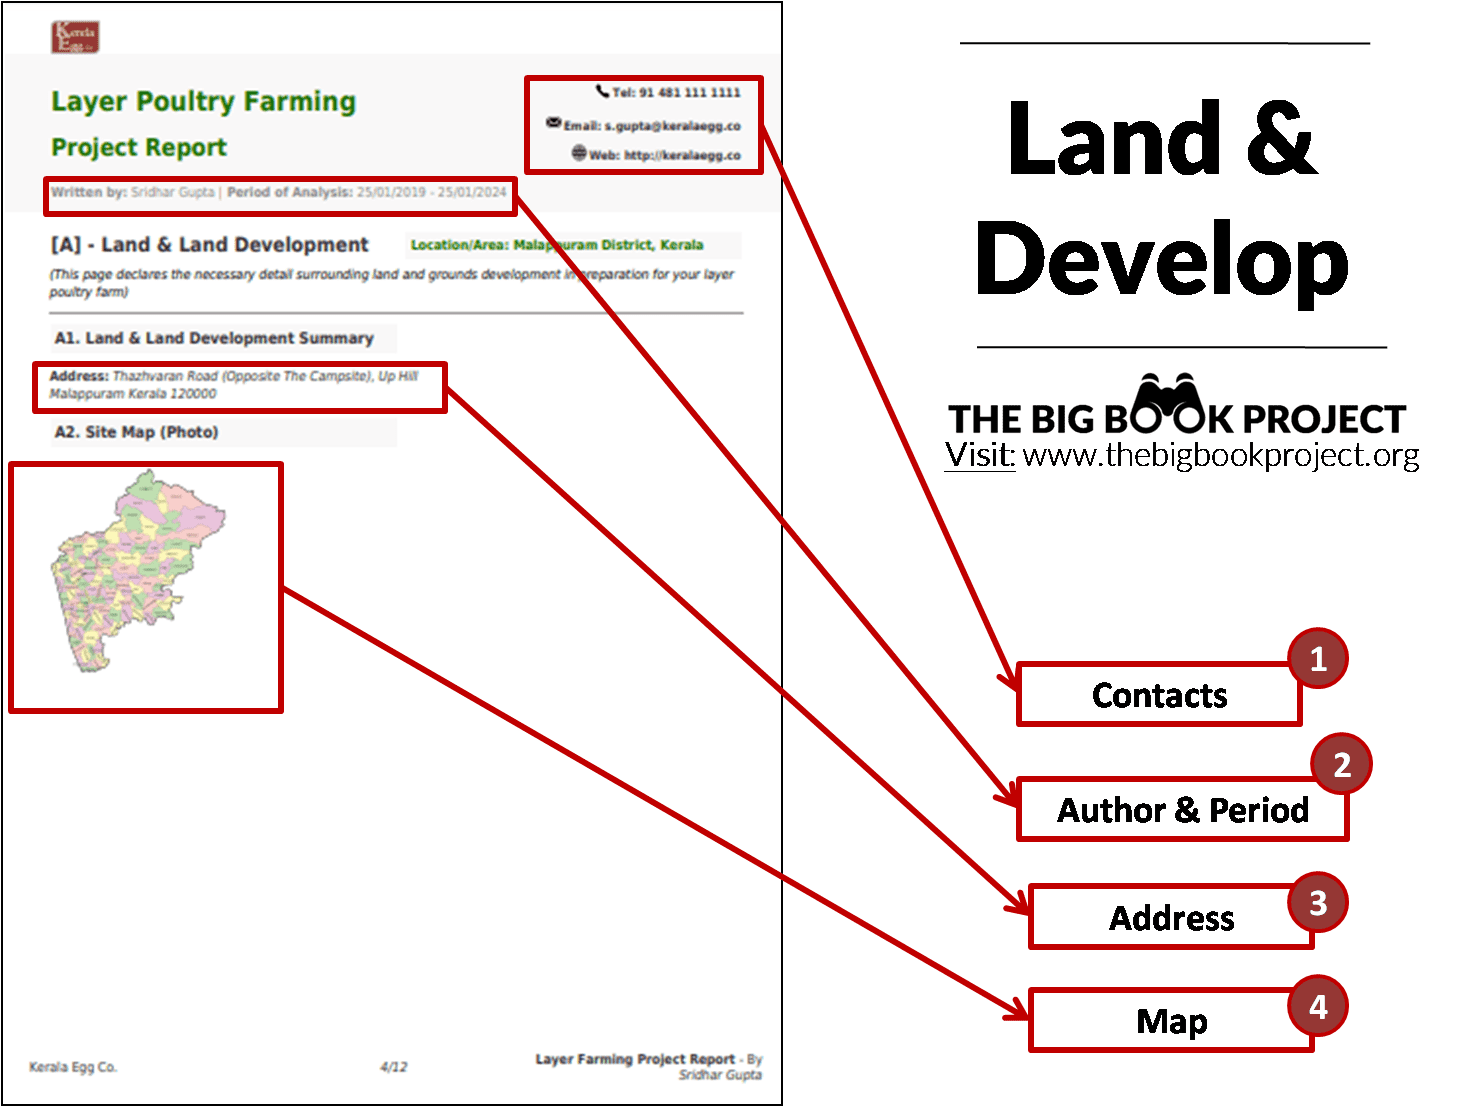 land and development for poultry farming project